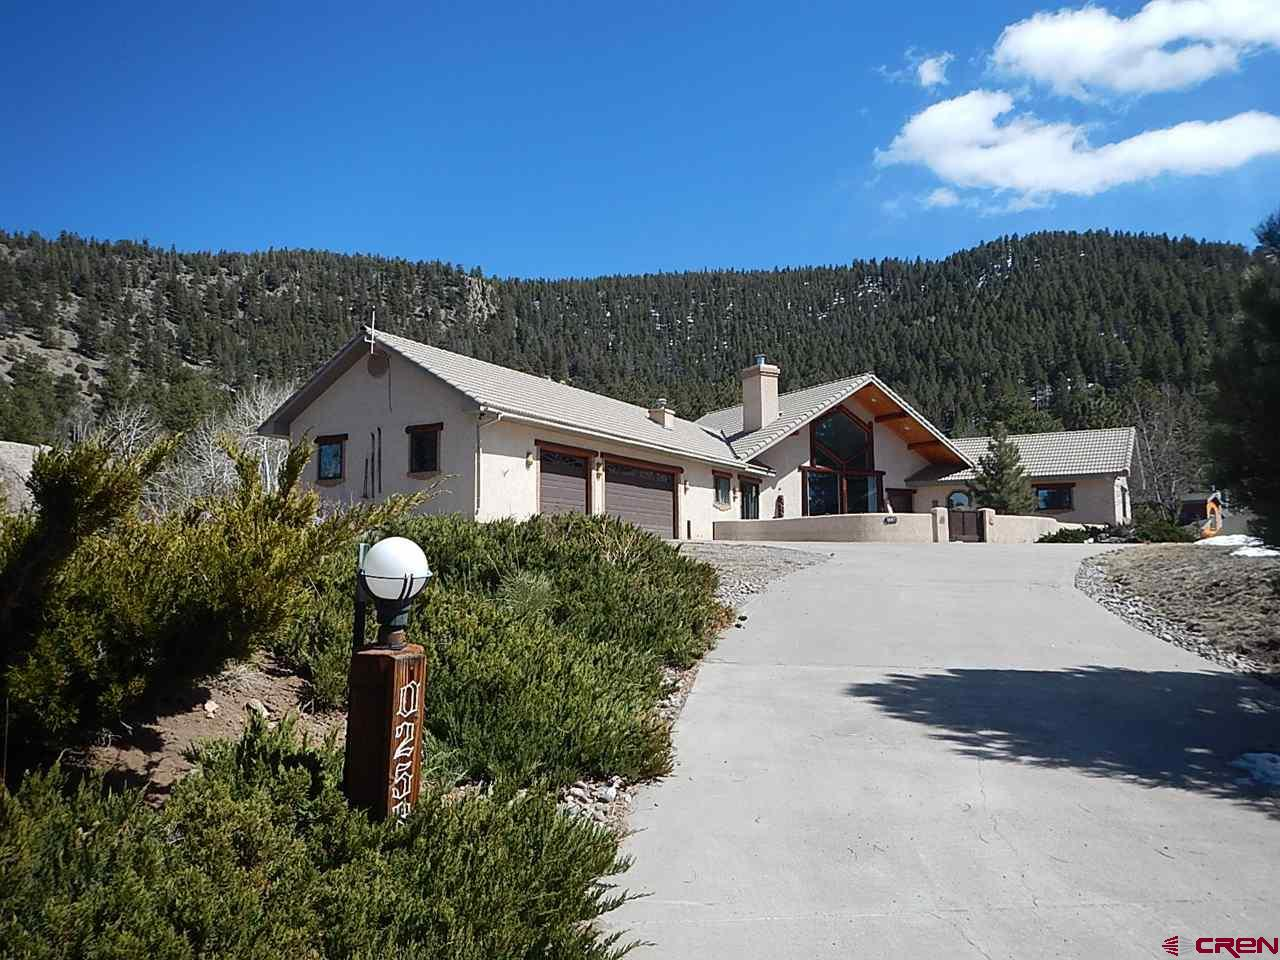 MLS# 768026 - 2 - 258 N Skyline Drive, South Fork, CO 81154